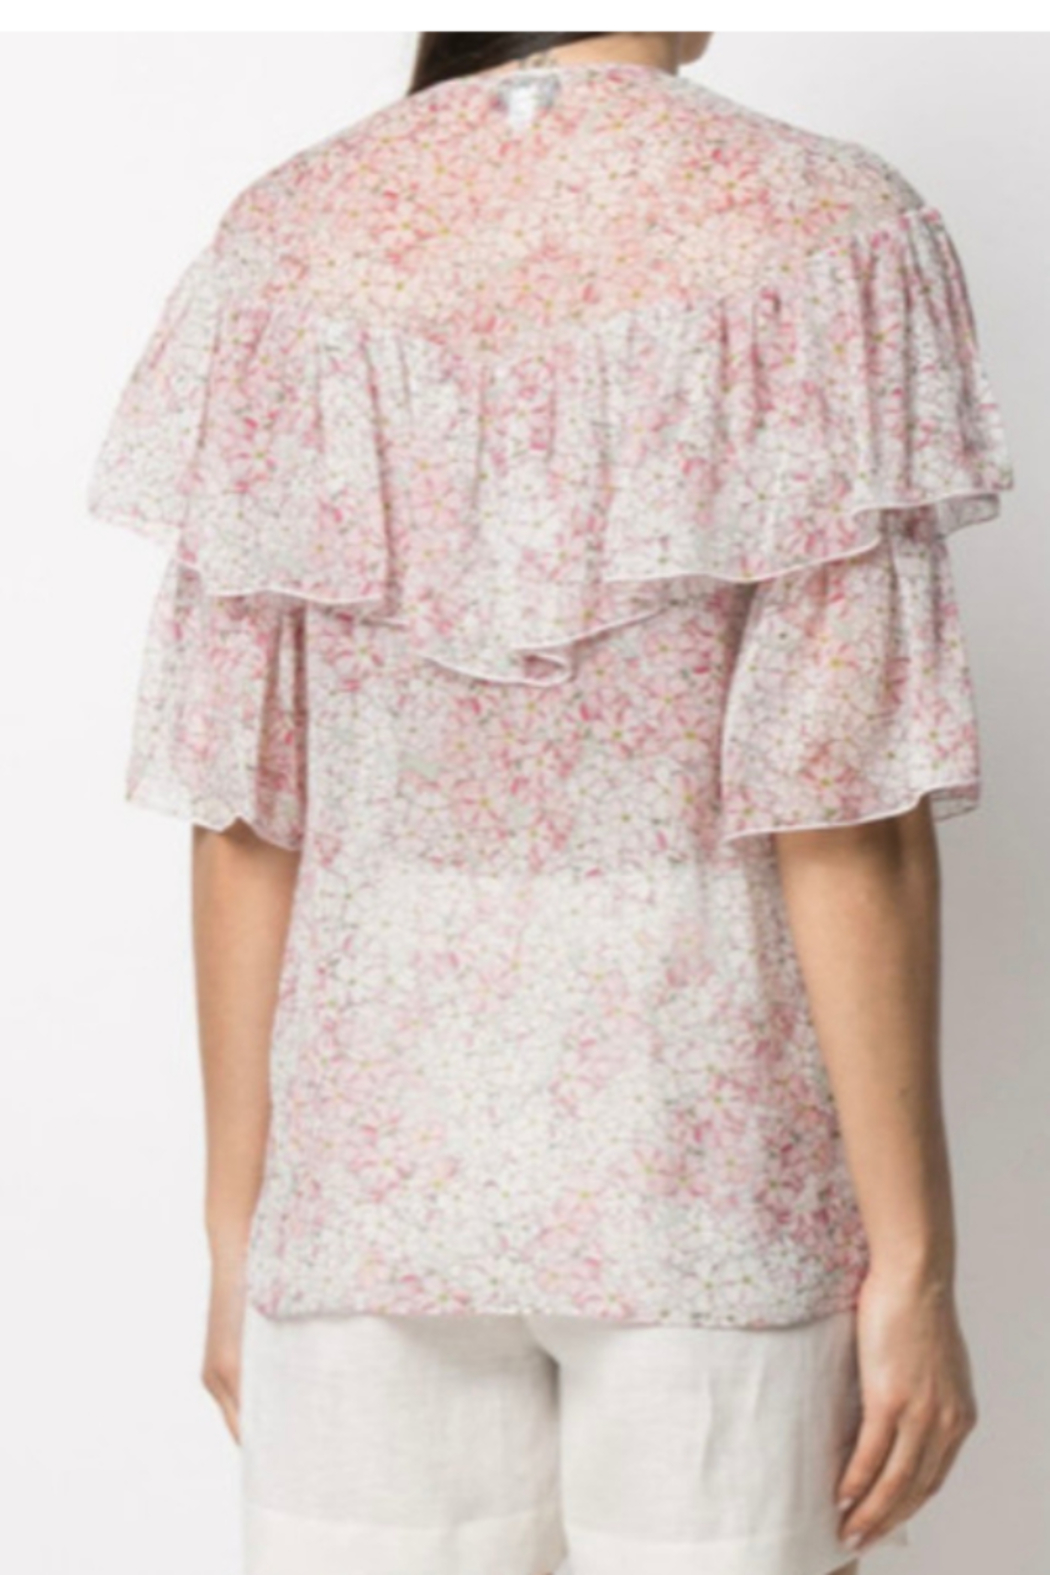 Giambattista Valli FLORAL PRINTED BLOUSE - Front Full Image